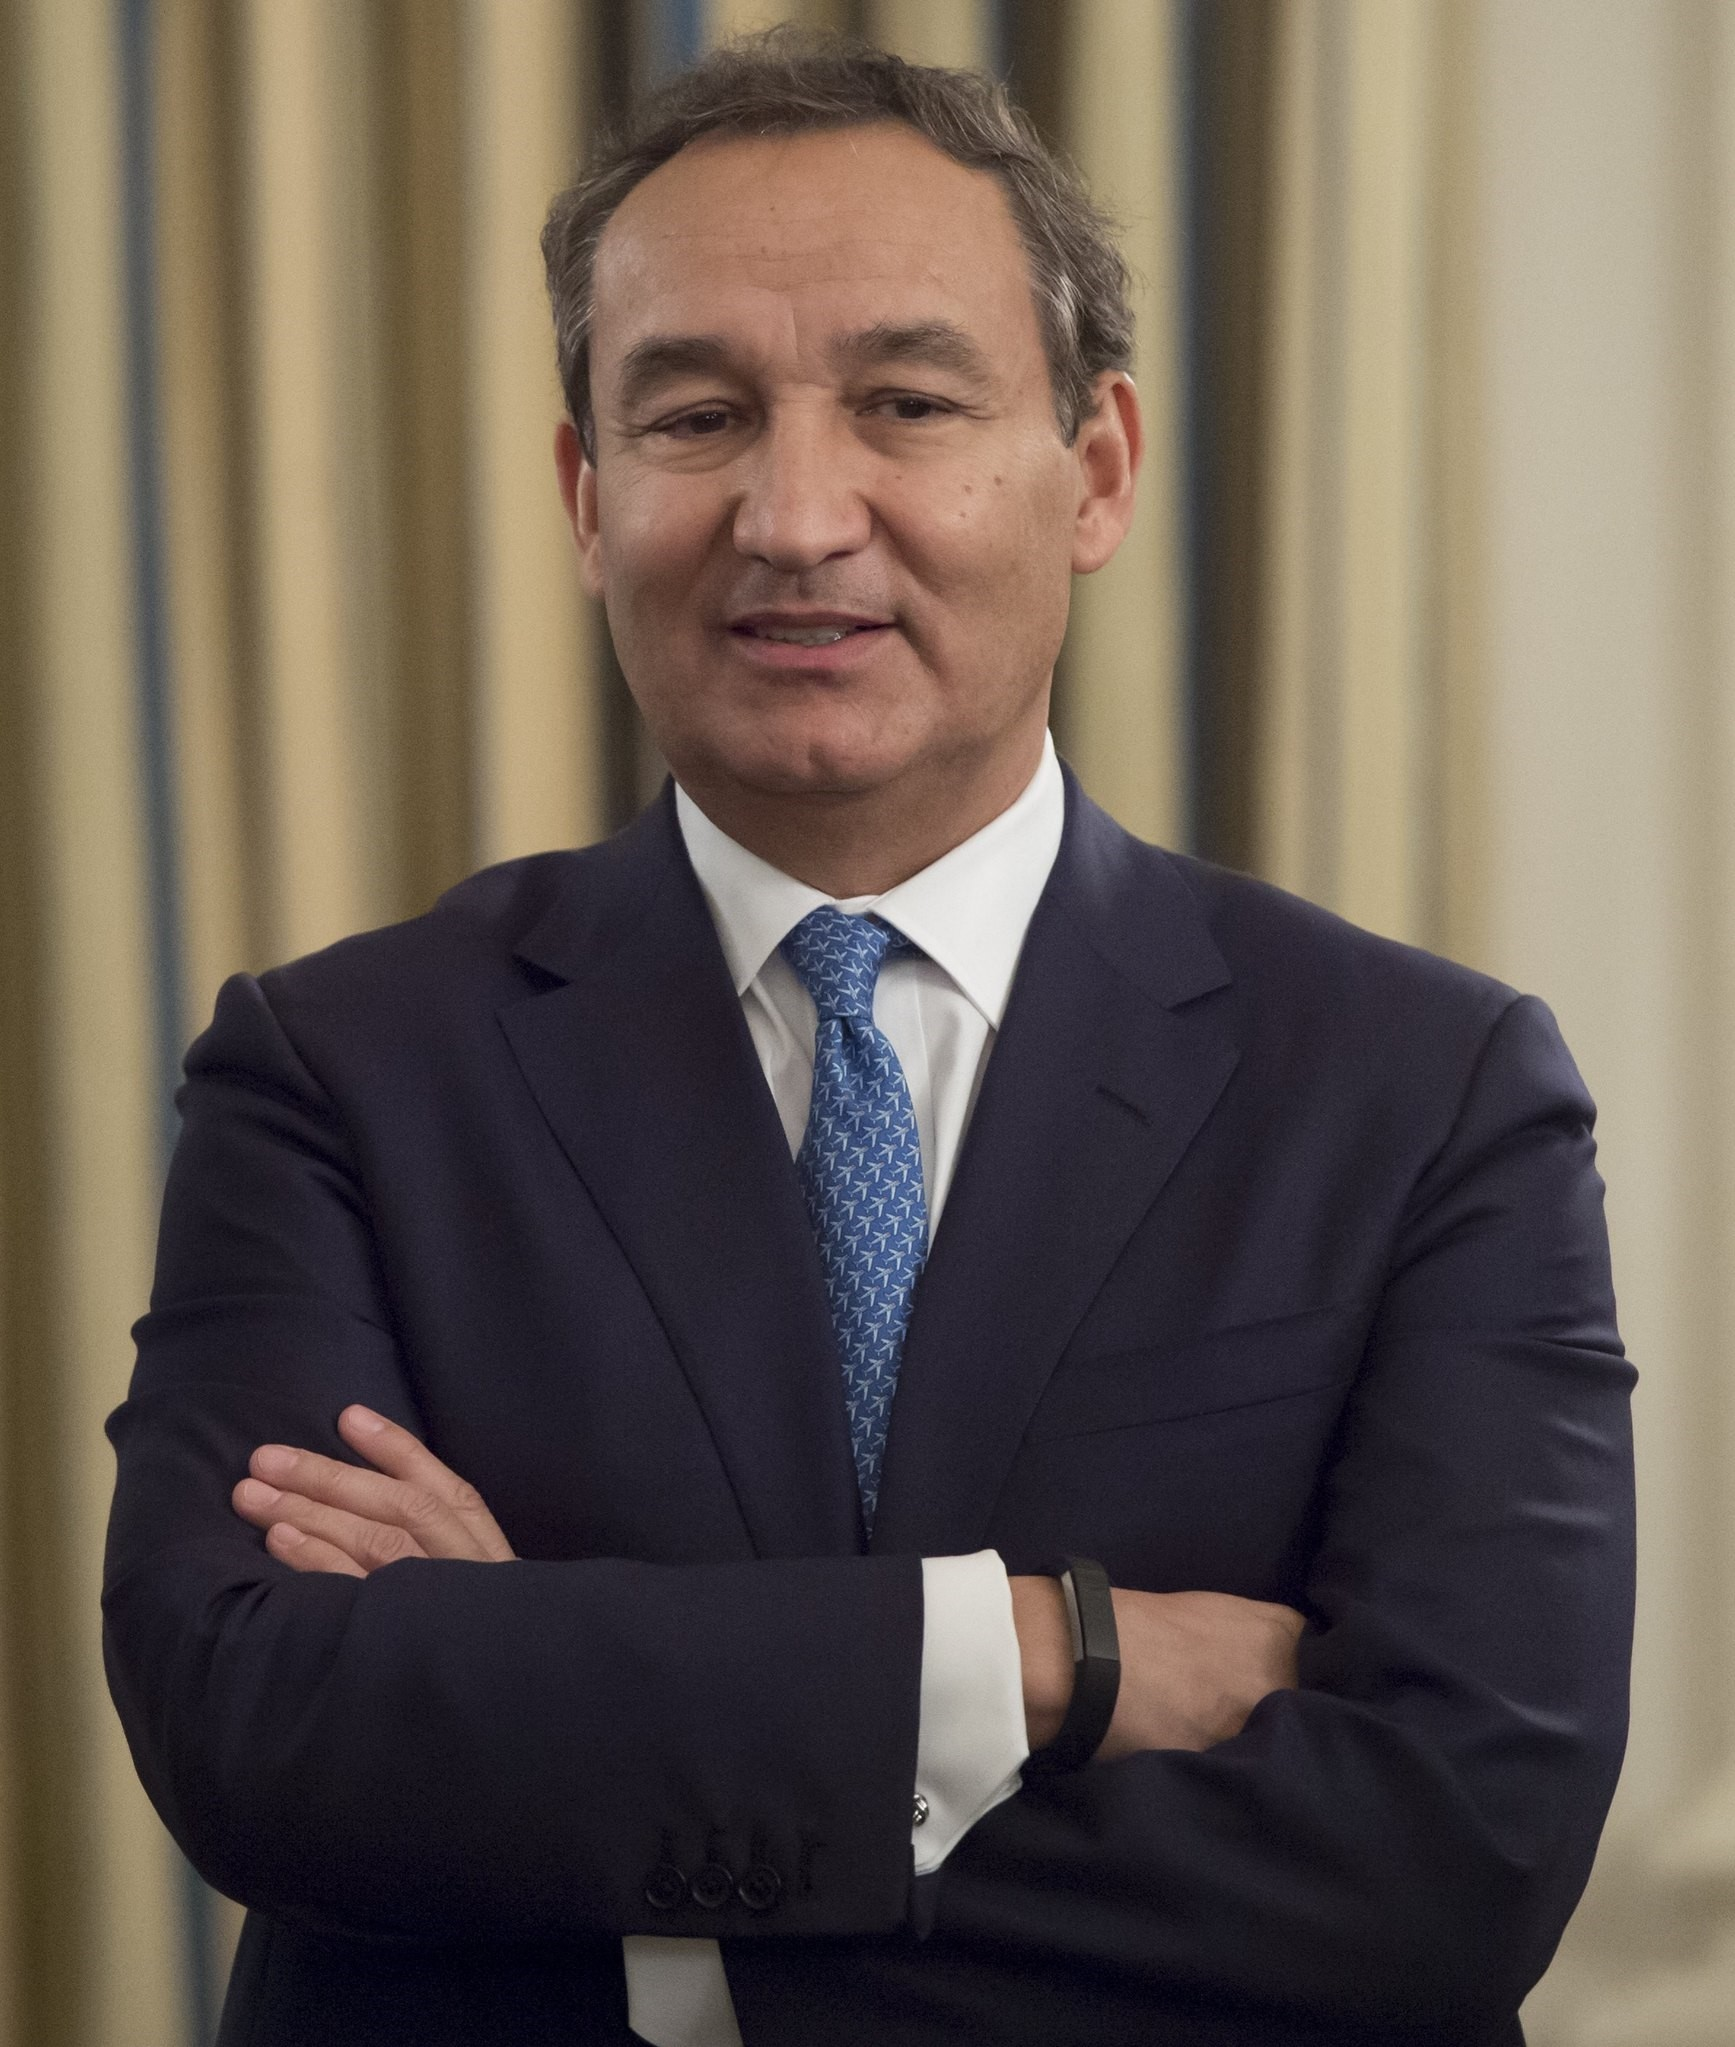 This file photo taken on February 9, 2017 shows Oscar Munoz, President and CEO of United Airlines. (AFP Photo)